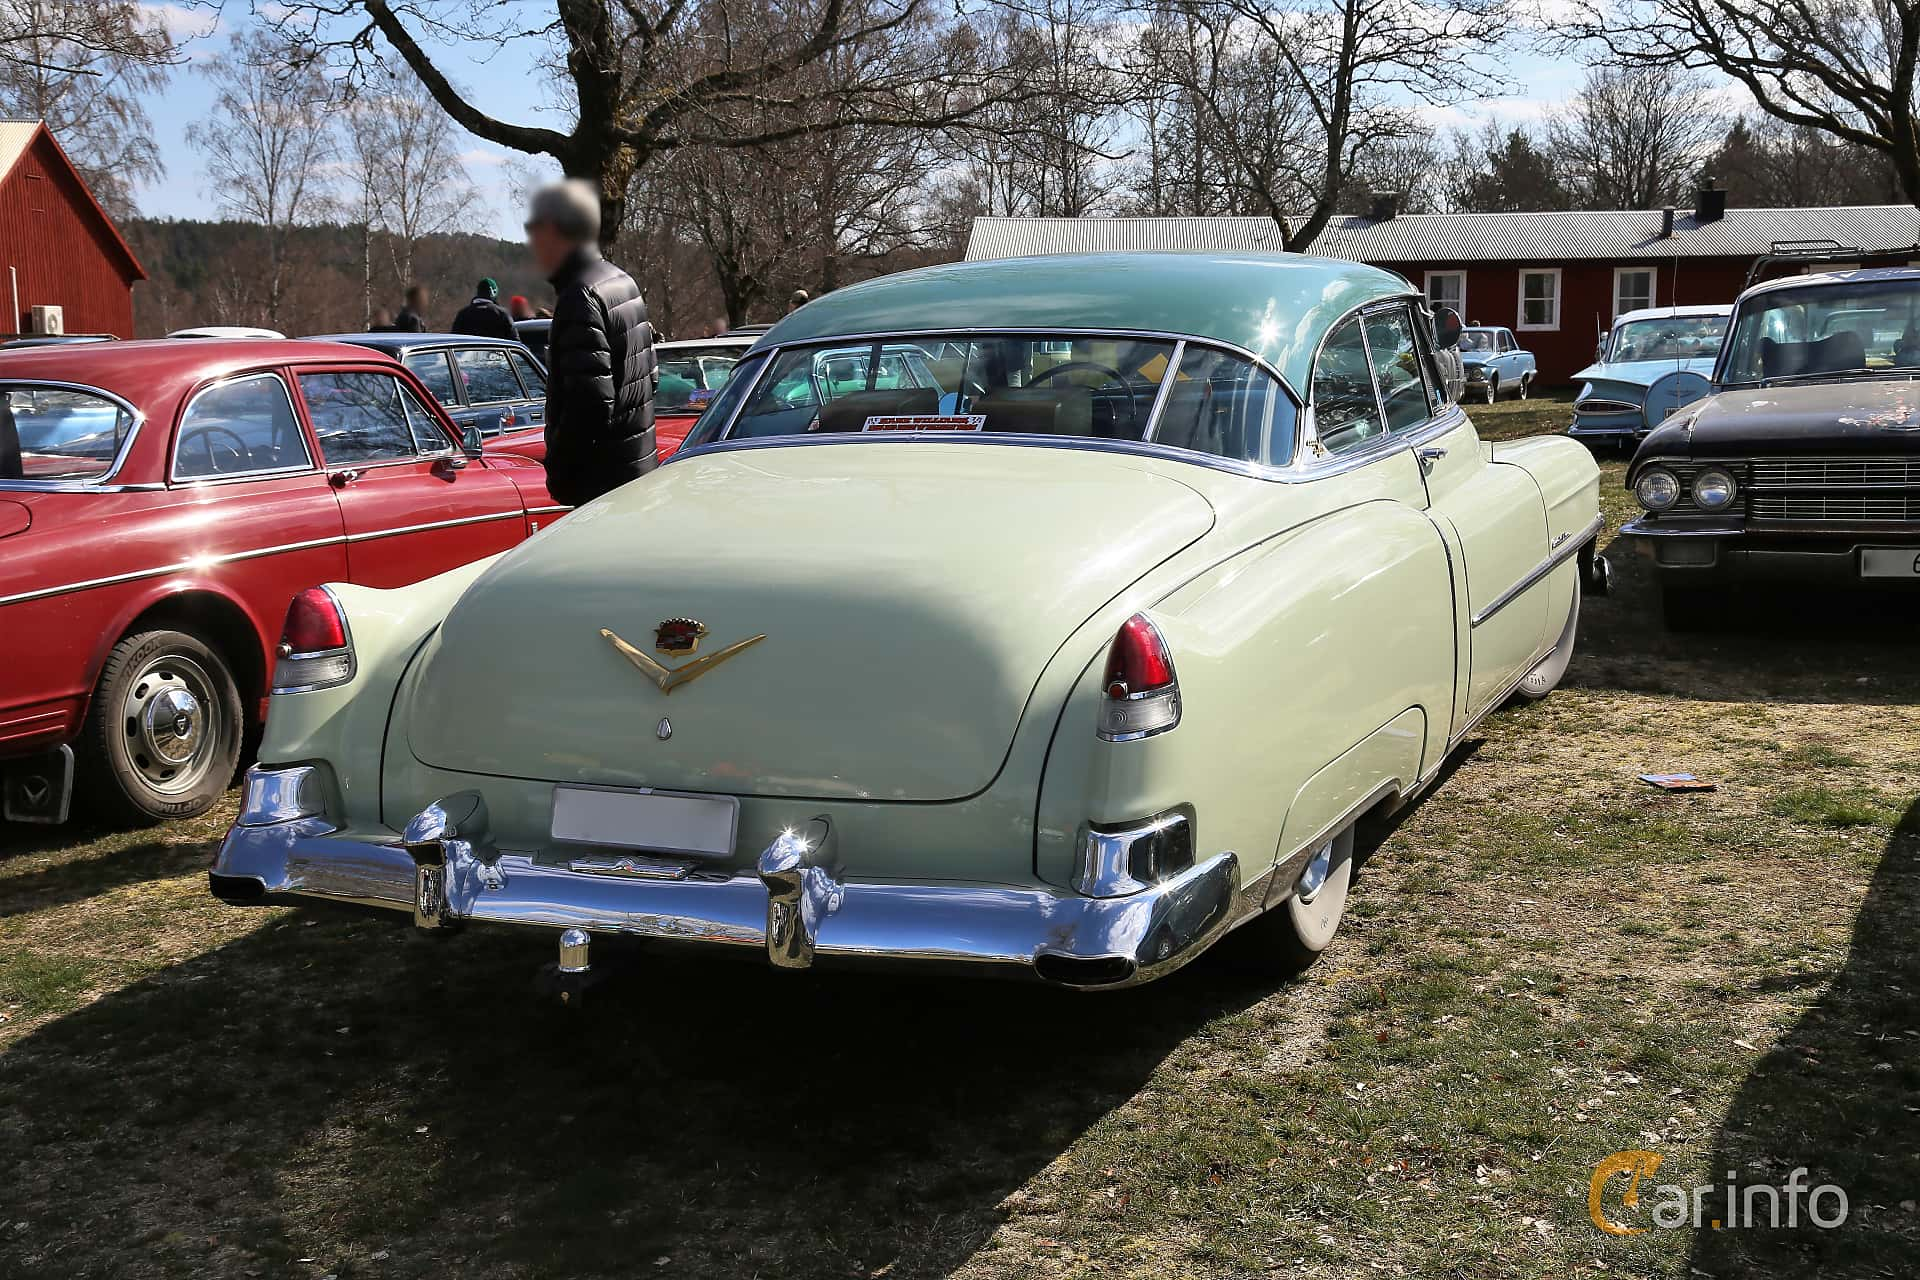 Cadillac Sixty-Two Coupé de Ville 5.4 V8 Hydra-Matic, 193hp, 1952 at Uddevalla Veteranbilsmarknad Backamo, Ljungsk 2019